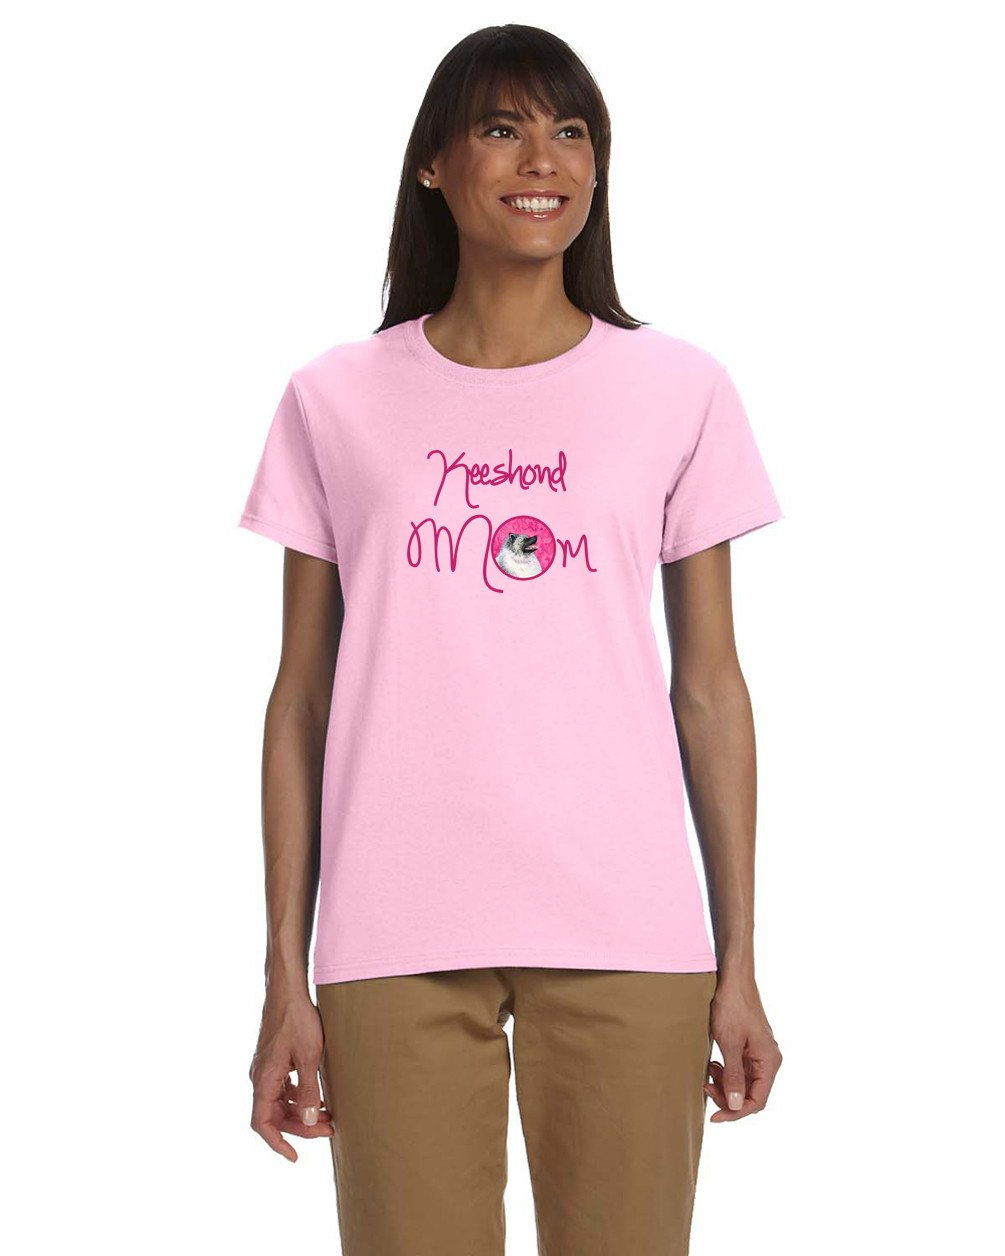 Pink Keeshond Mom T-shirt Ladies Cut Short Sleeve Large SS4764PK-978-L by Caroline's Treasures